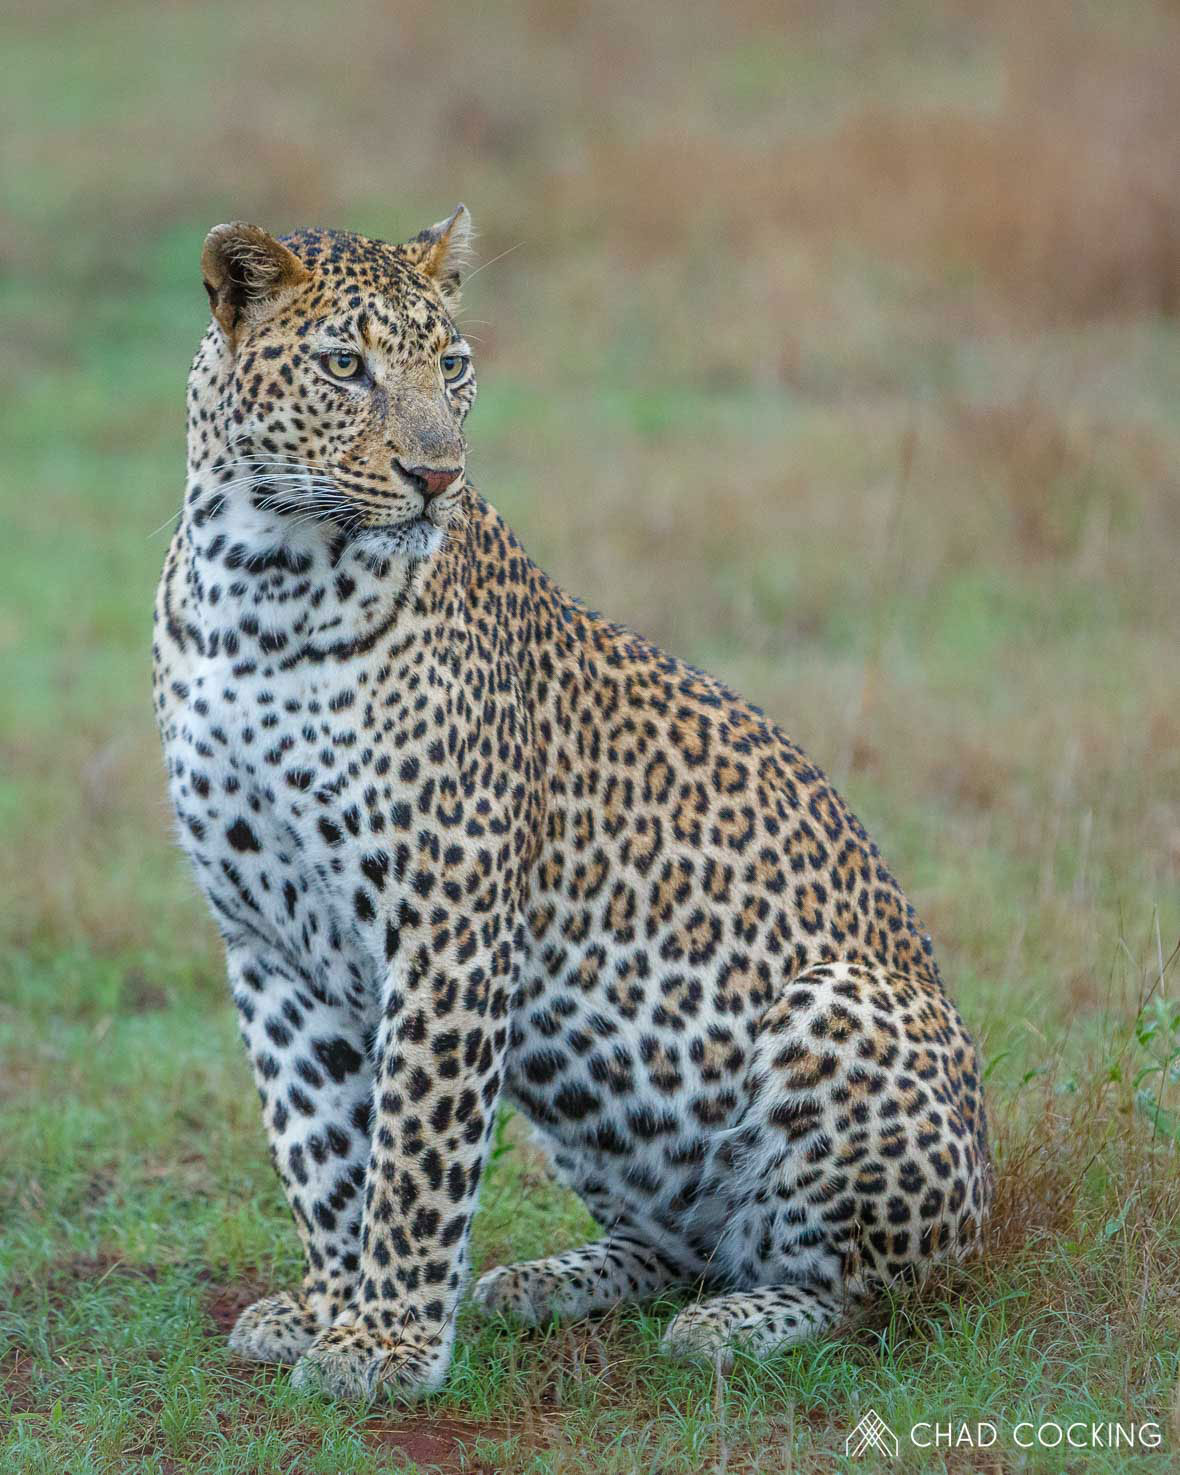 Tanda Tula - Xidulu male leopard in the rain